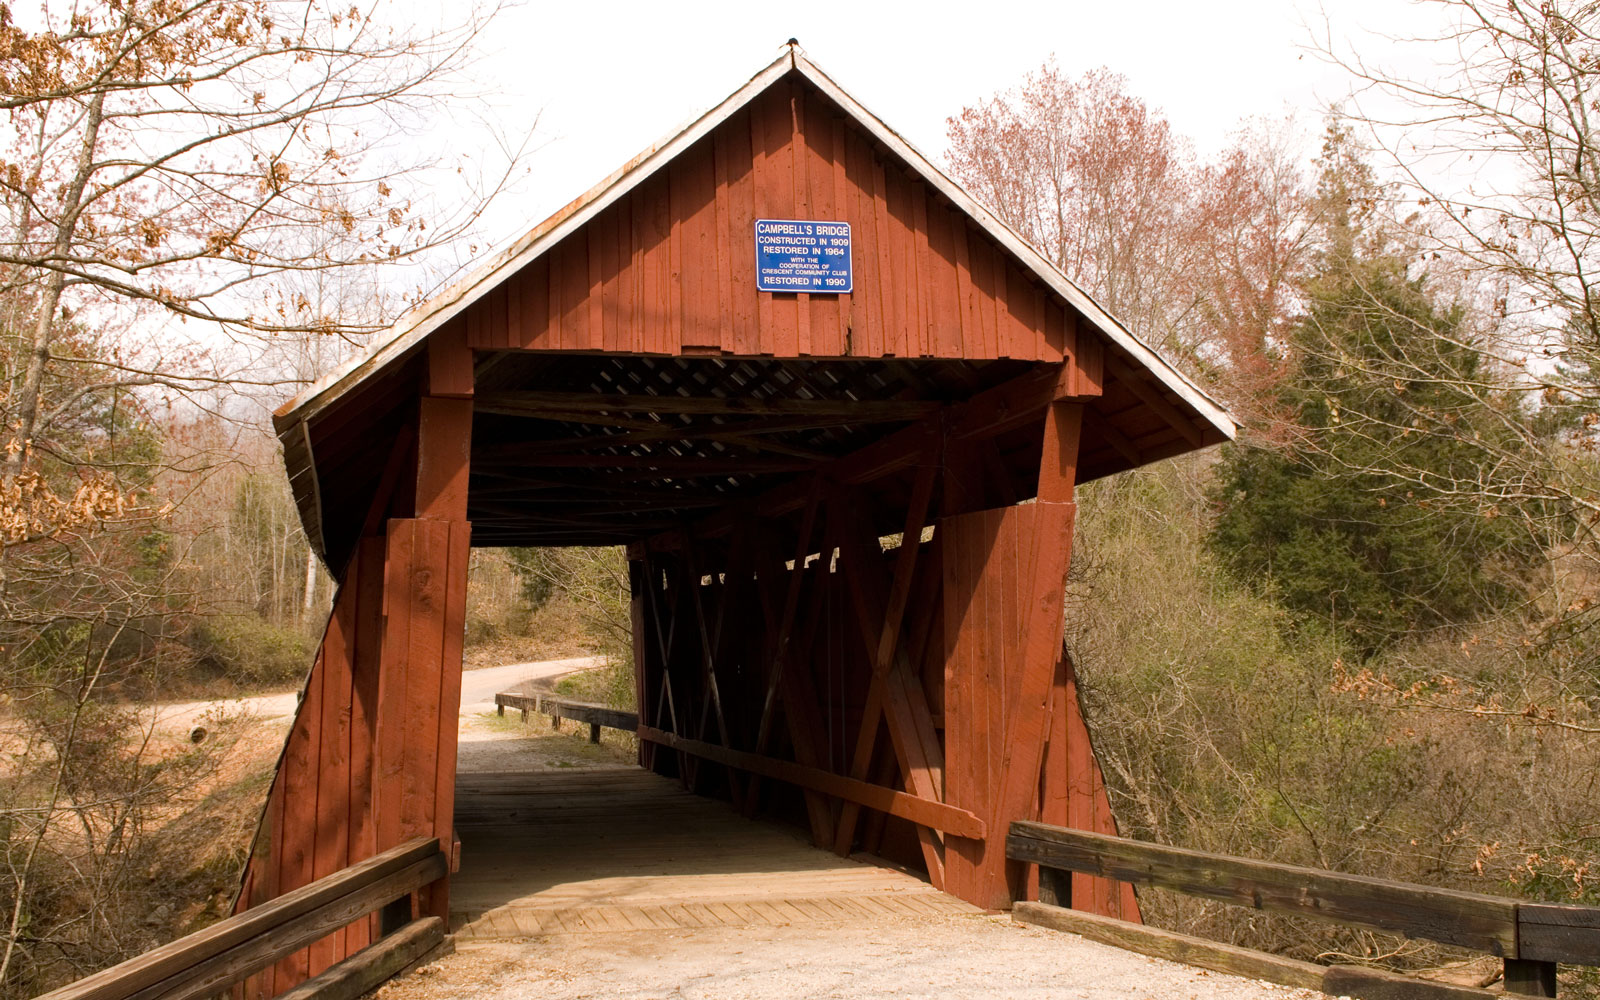 America's Most Beautiful Covered Bridges: Campbell's